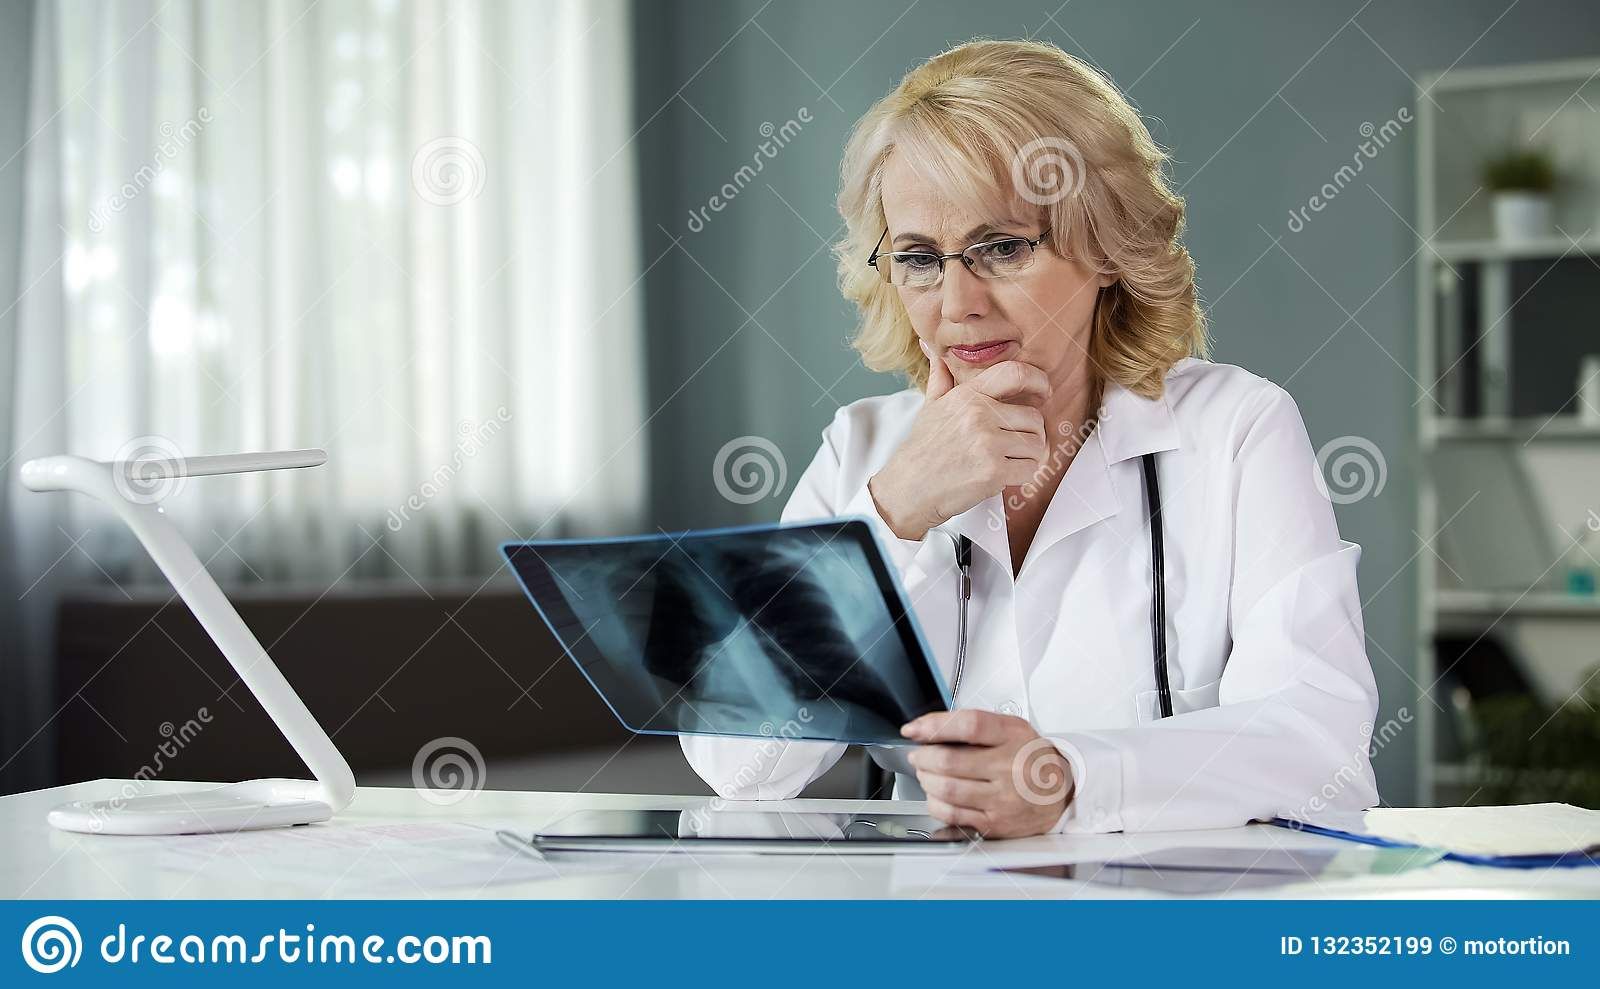 Concerned female pulmonologist examining X-ray of patient s lungs, diagnostics